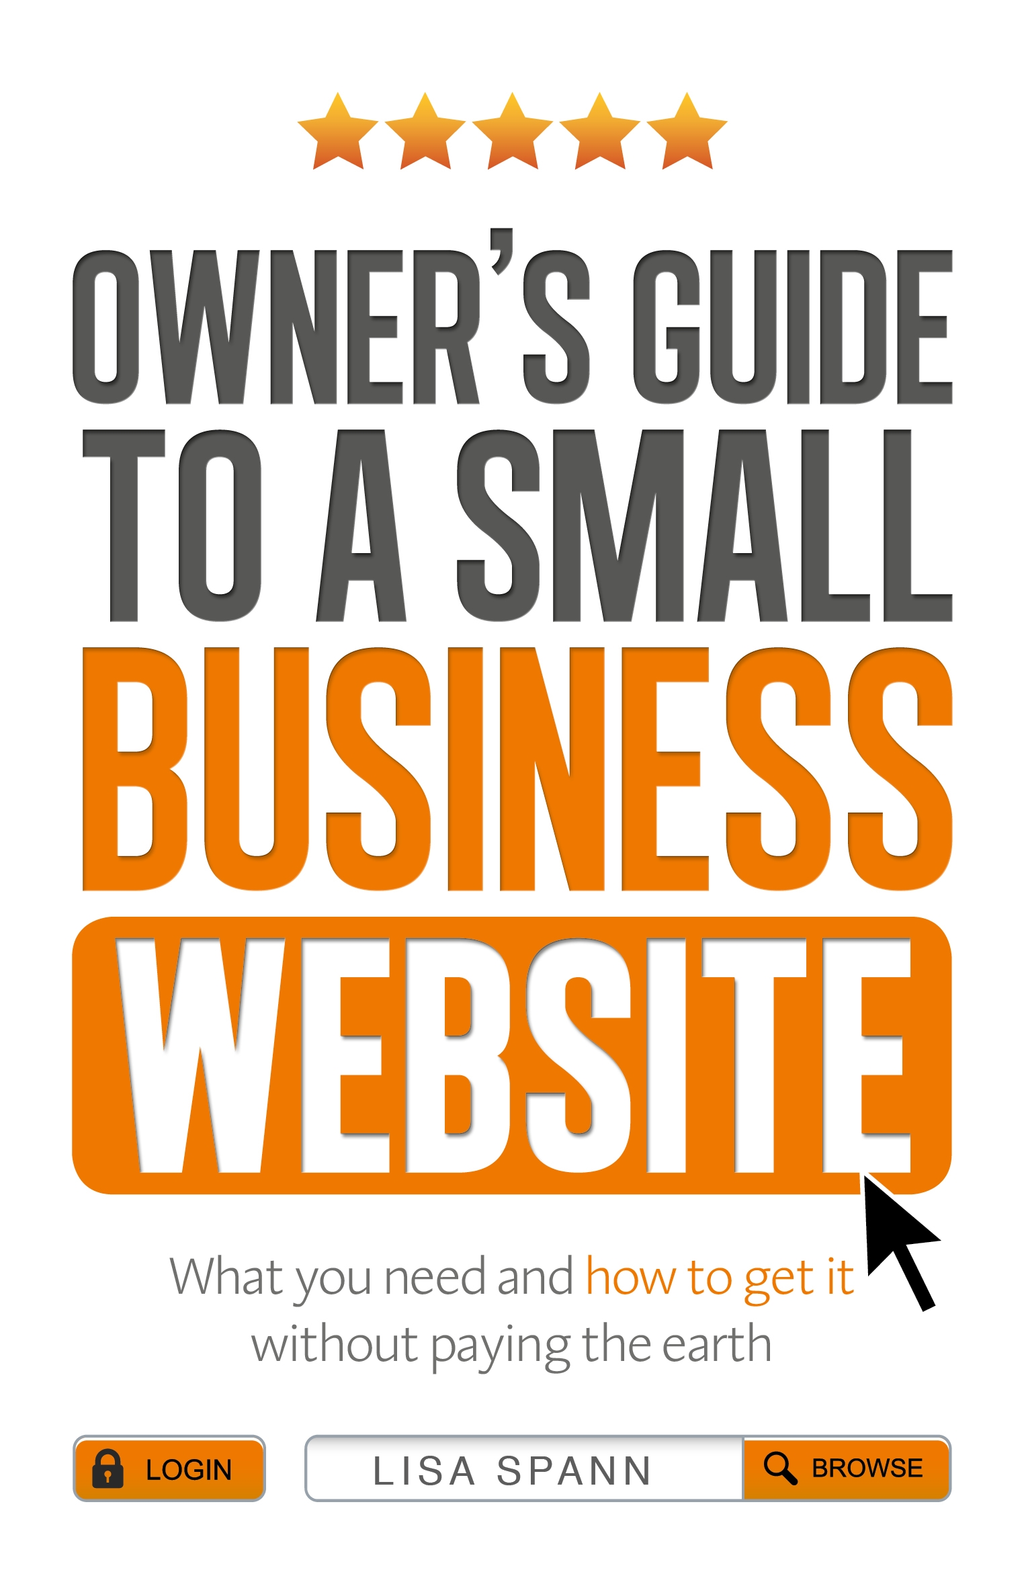 Owner's Guide to a Small Business Website What you need and how to get there - without paying the earth